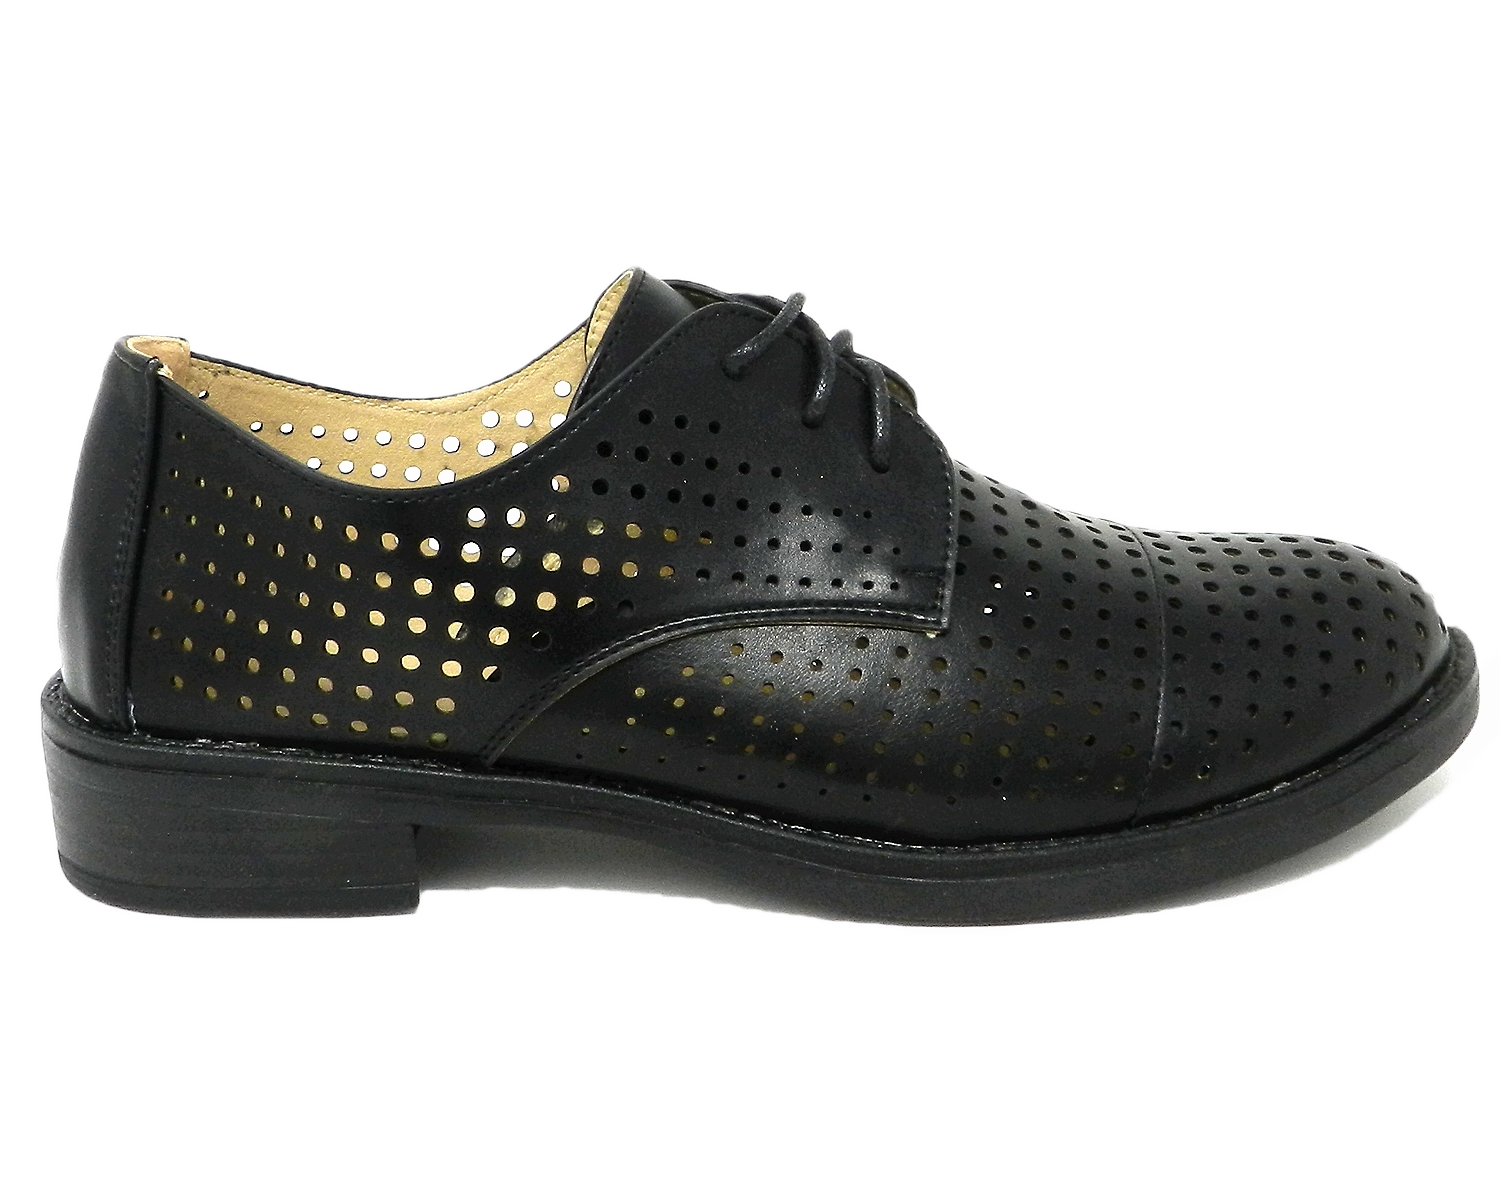 Francesina women's leather-perforated - black